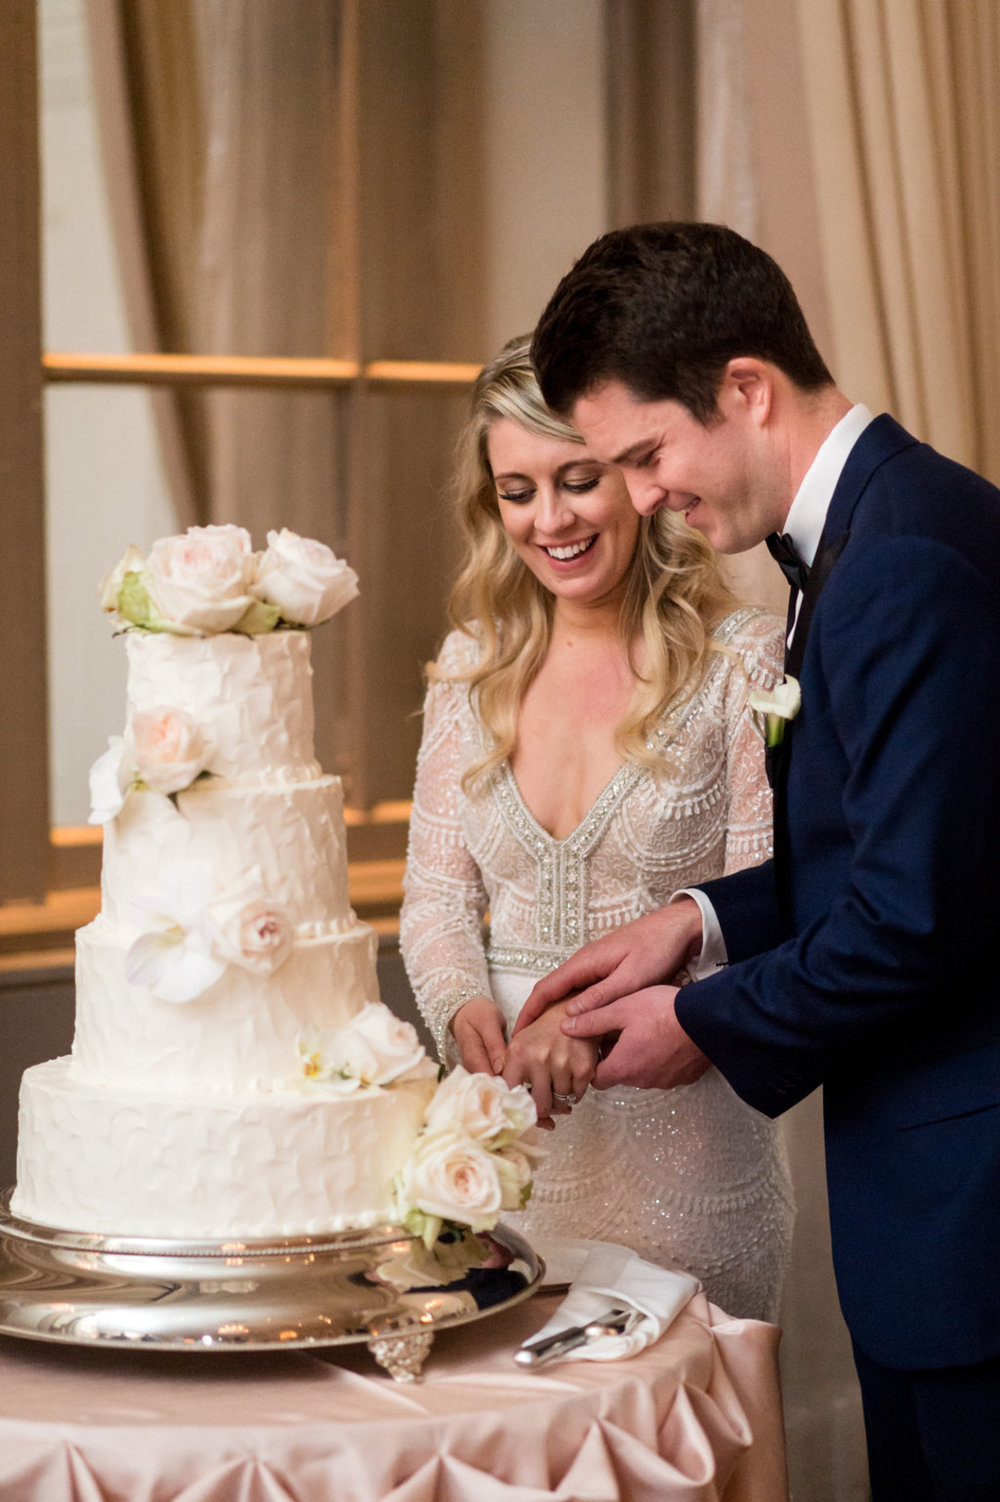 Bride and Groom Cutting the Cake The Standard Room Chicago Wedding Julia Franzosa Photography